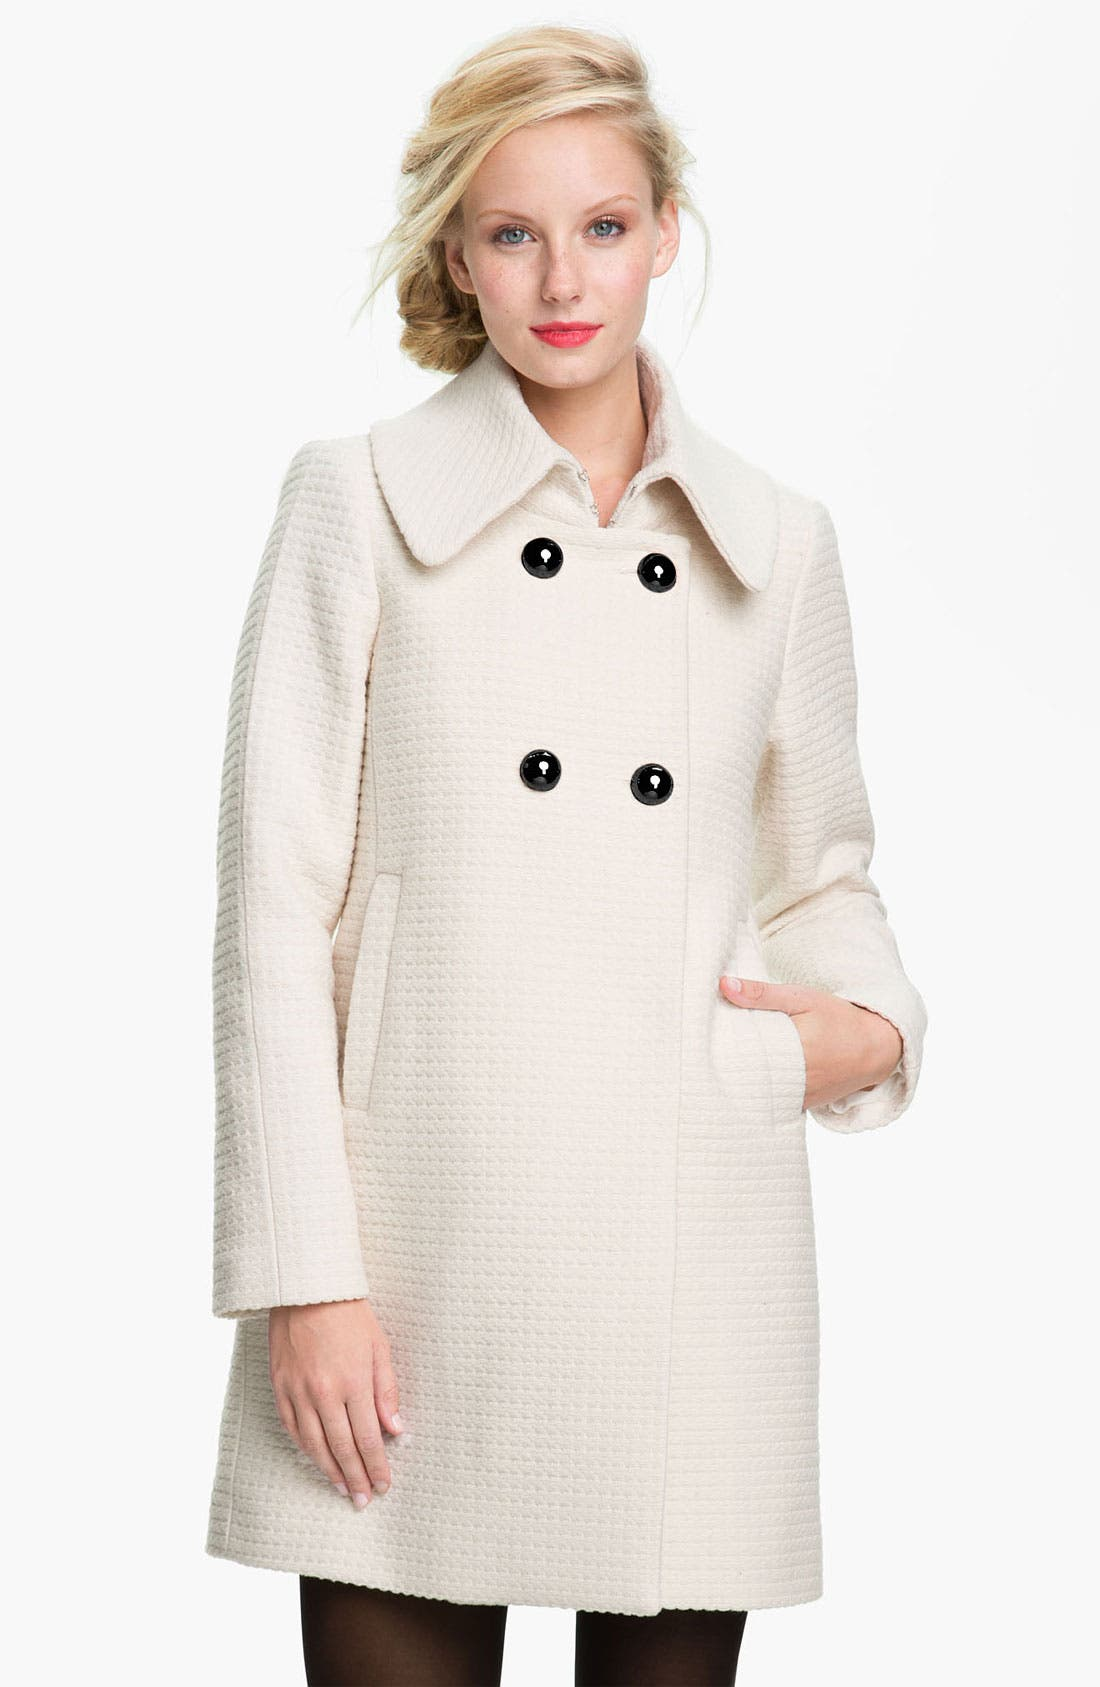 Alternate Image 1 Selected - Trina Turk Textured Double Breasted Coat